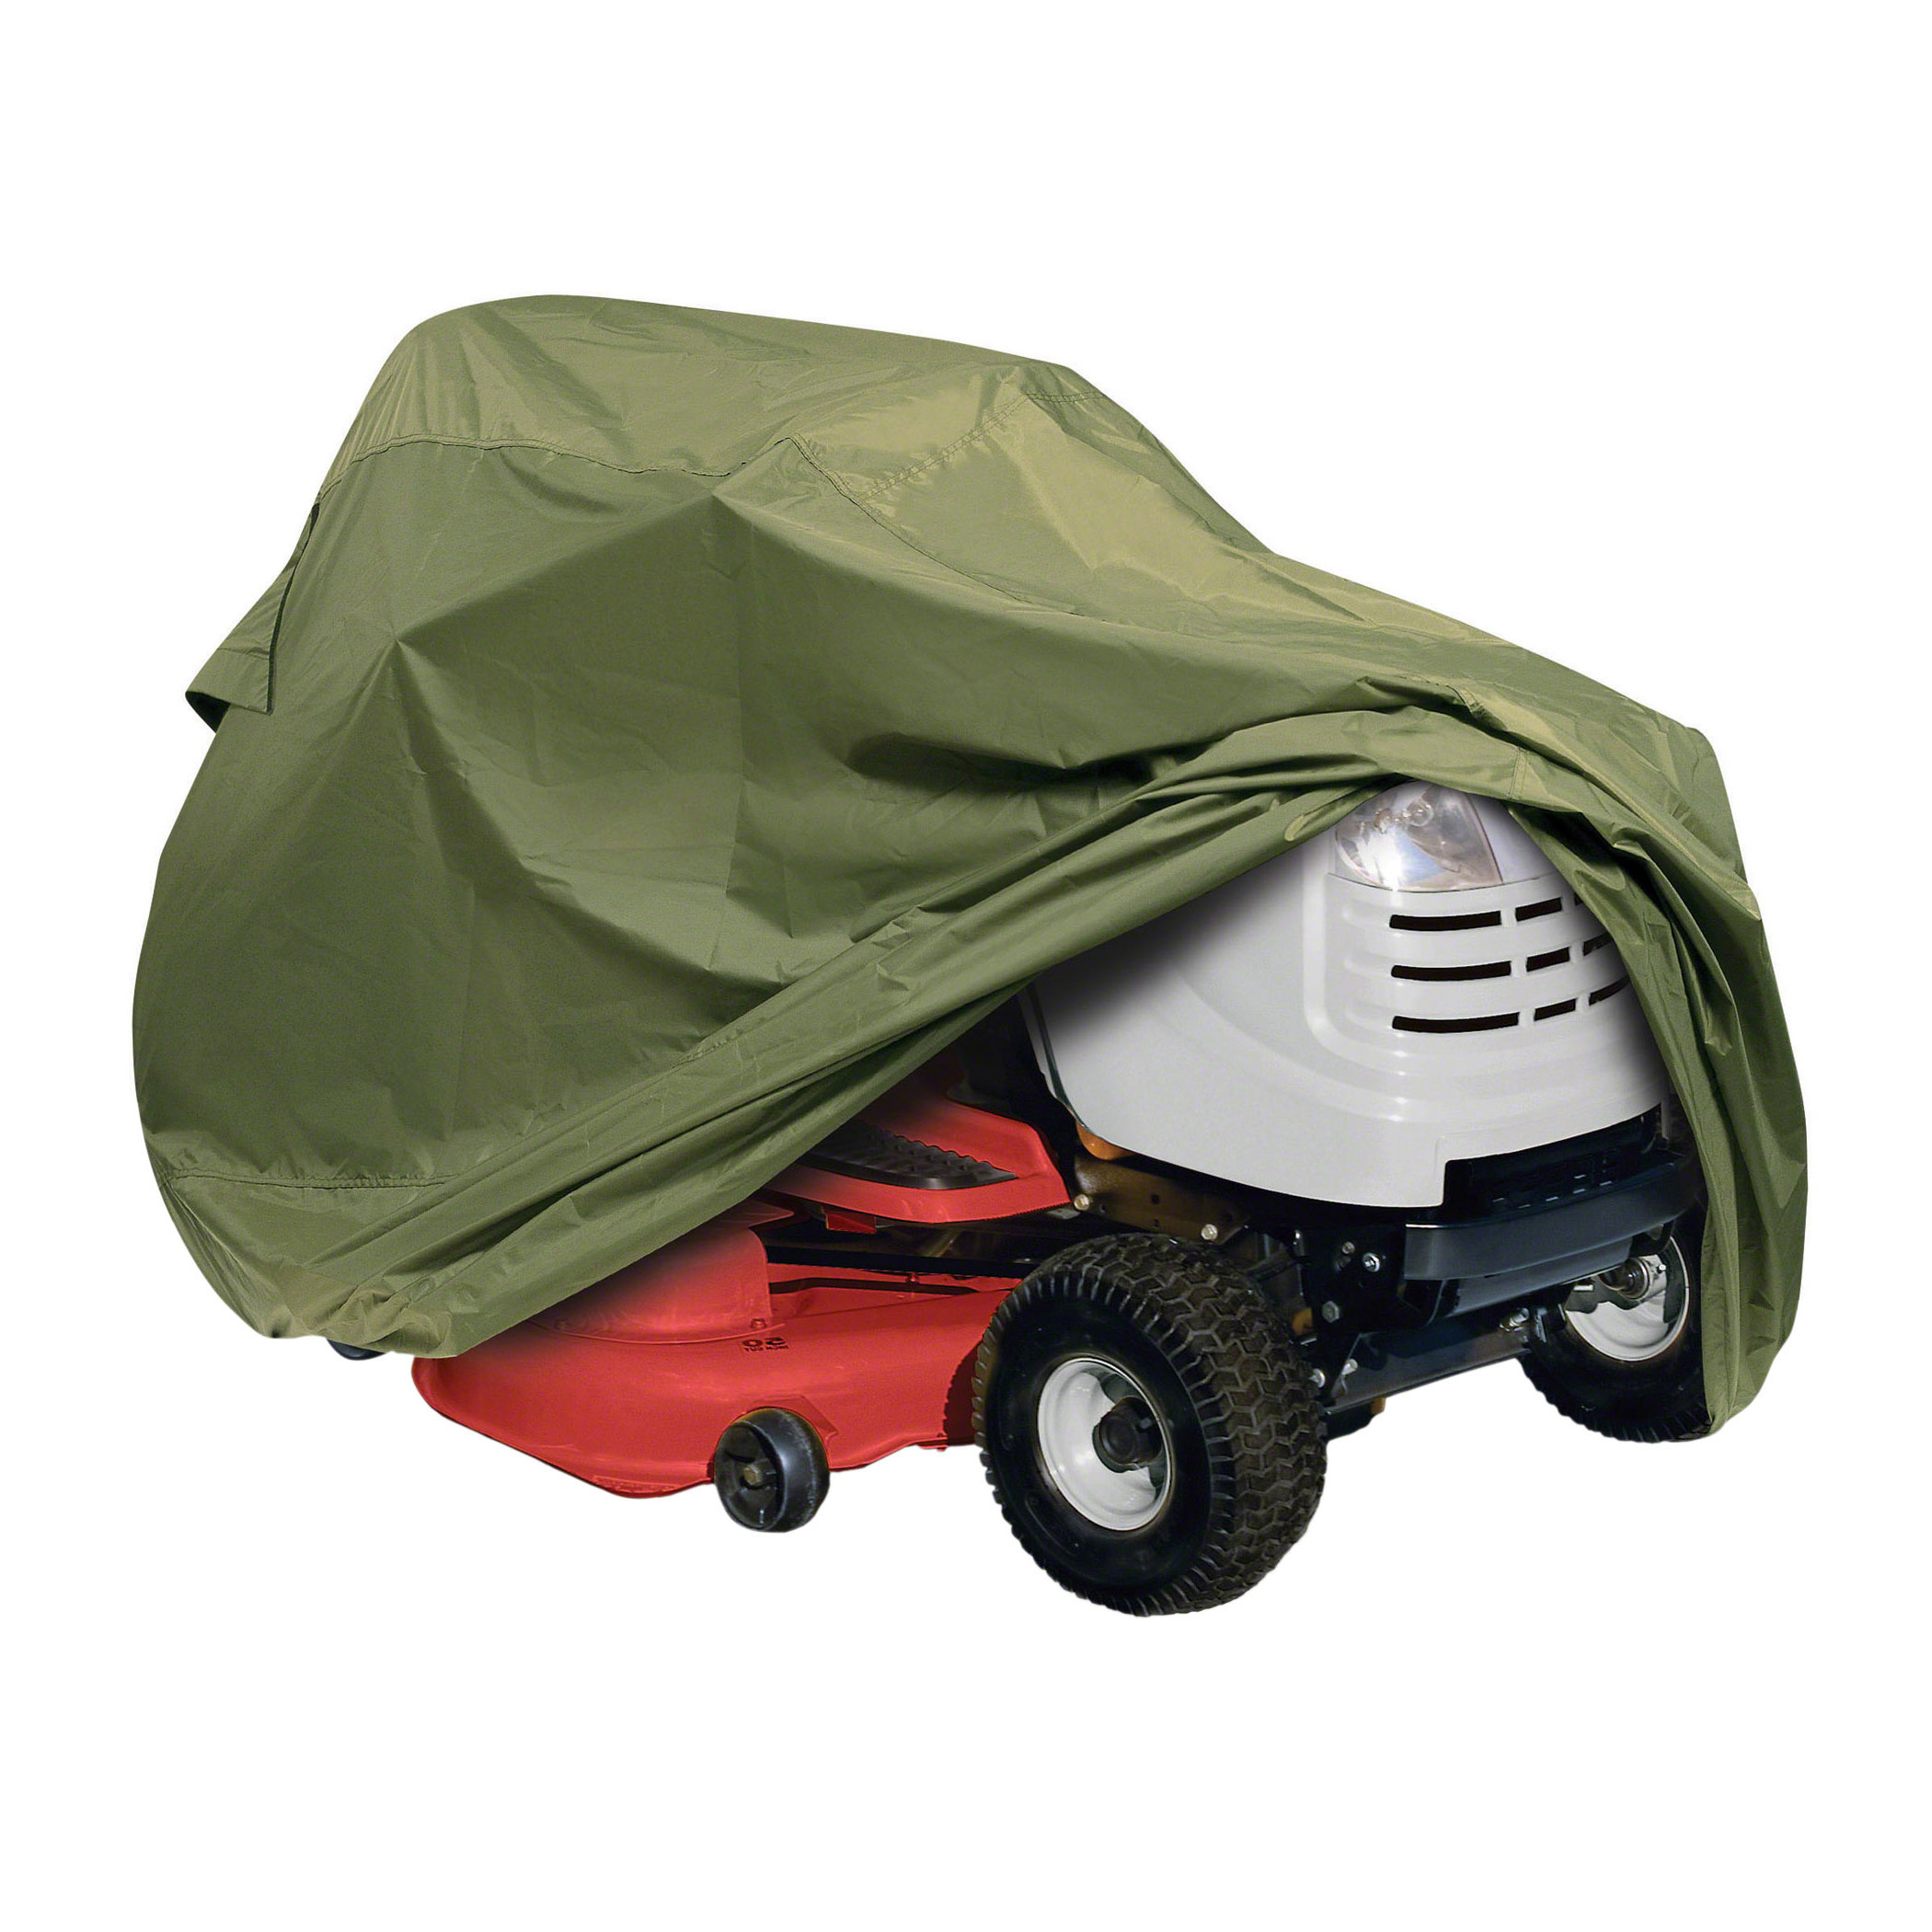 classic accessories 73910 lawn tractor cover ebay